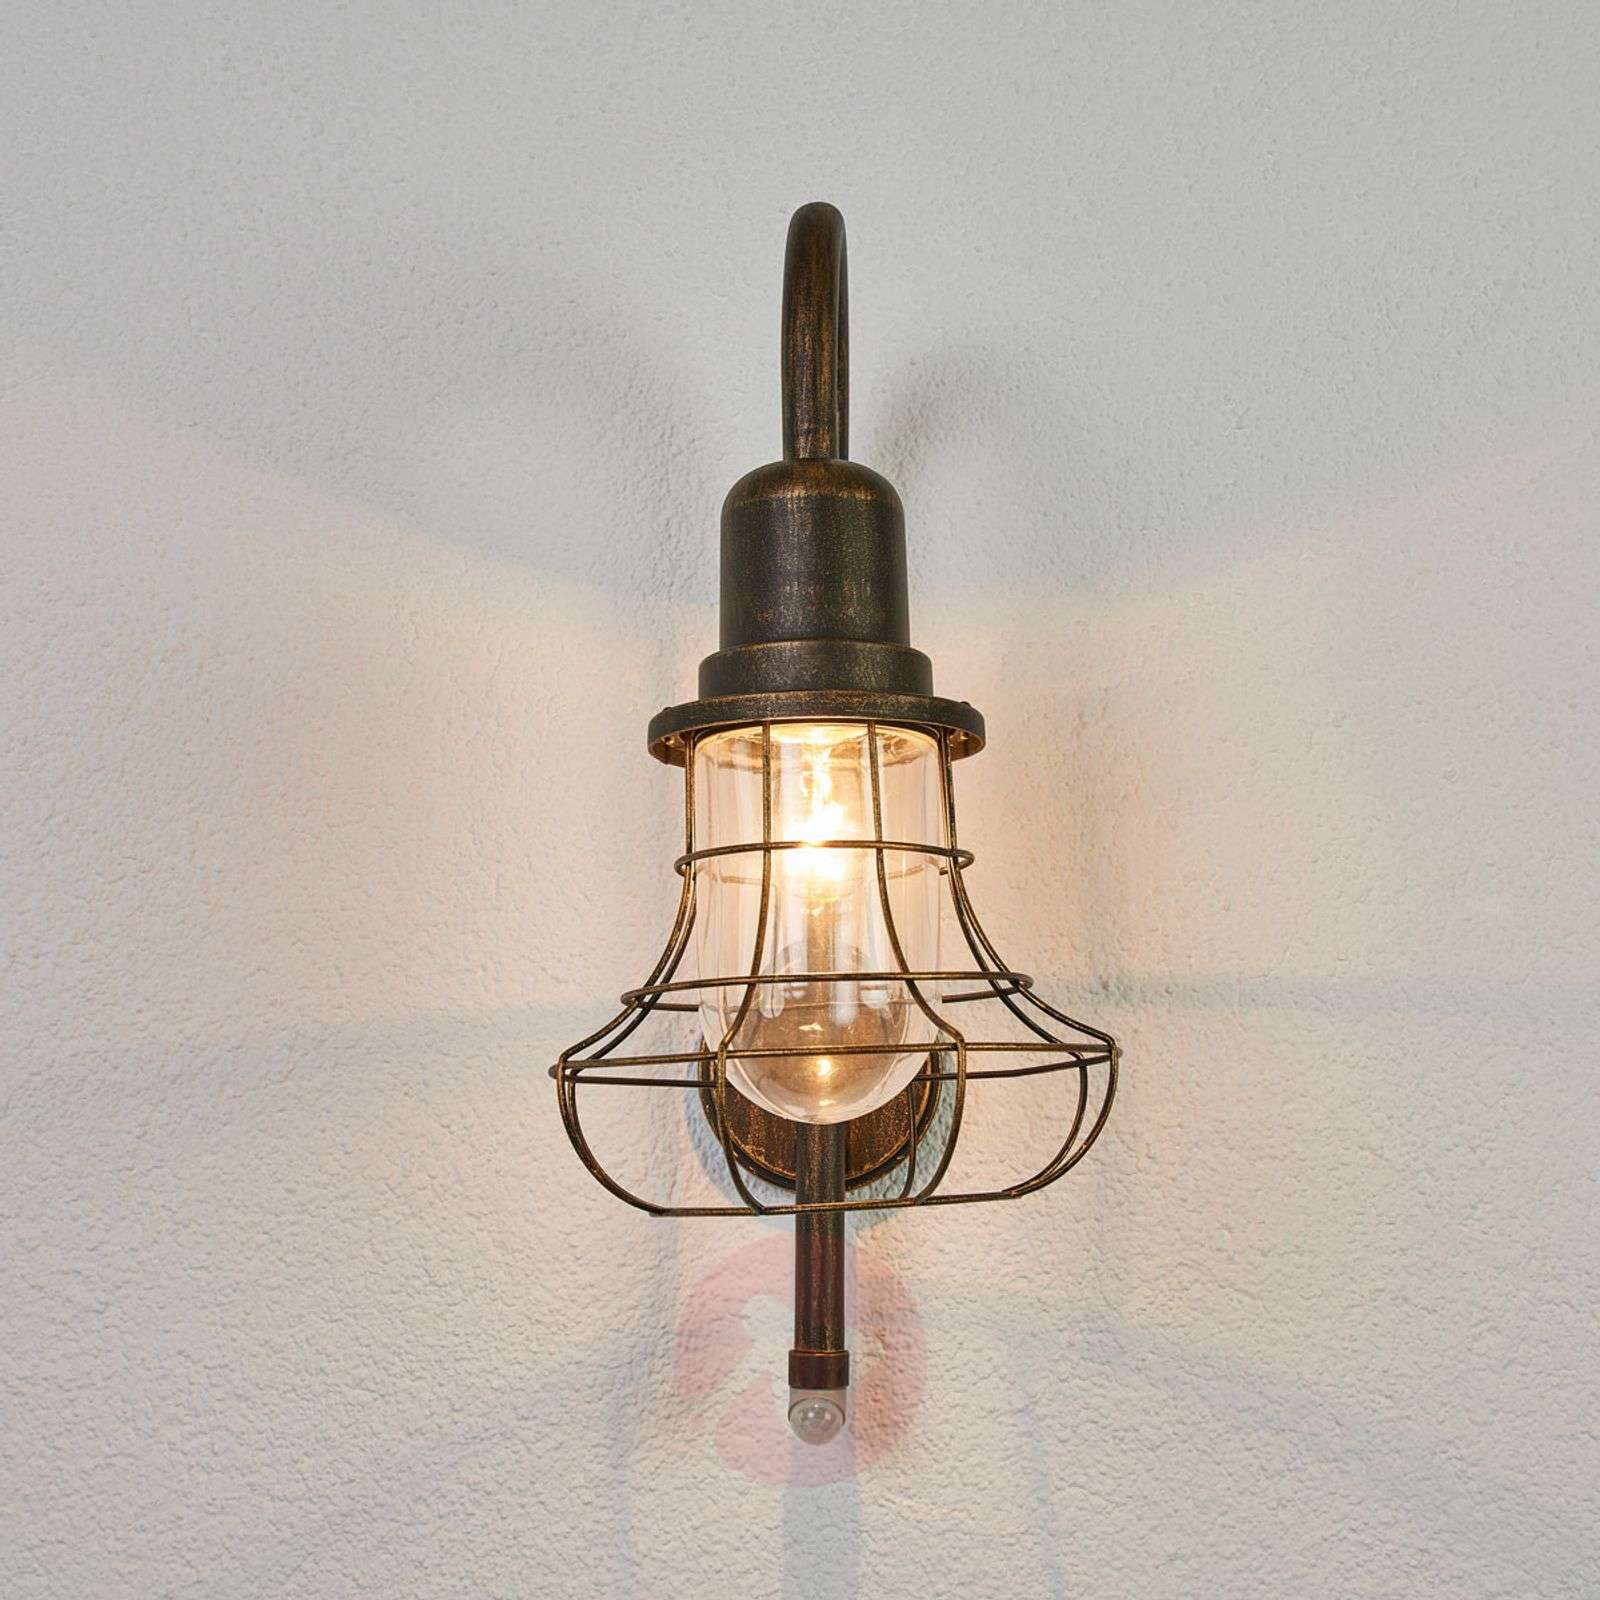 Antique outdoor wall lamp Bird with sensor-3006529-02